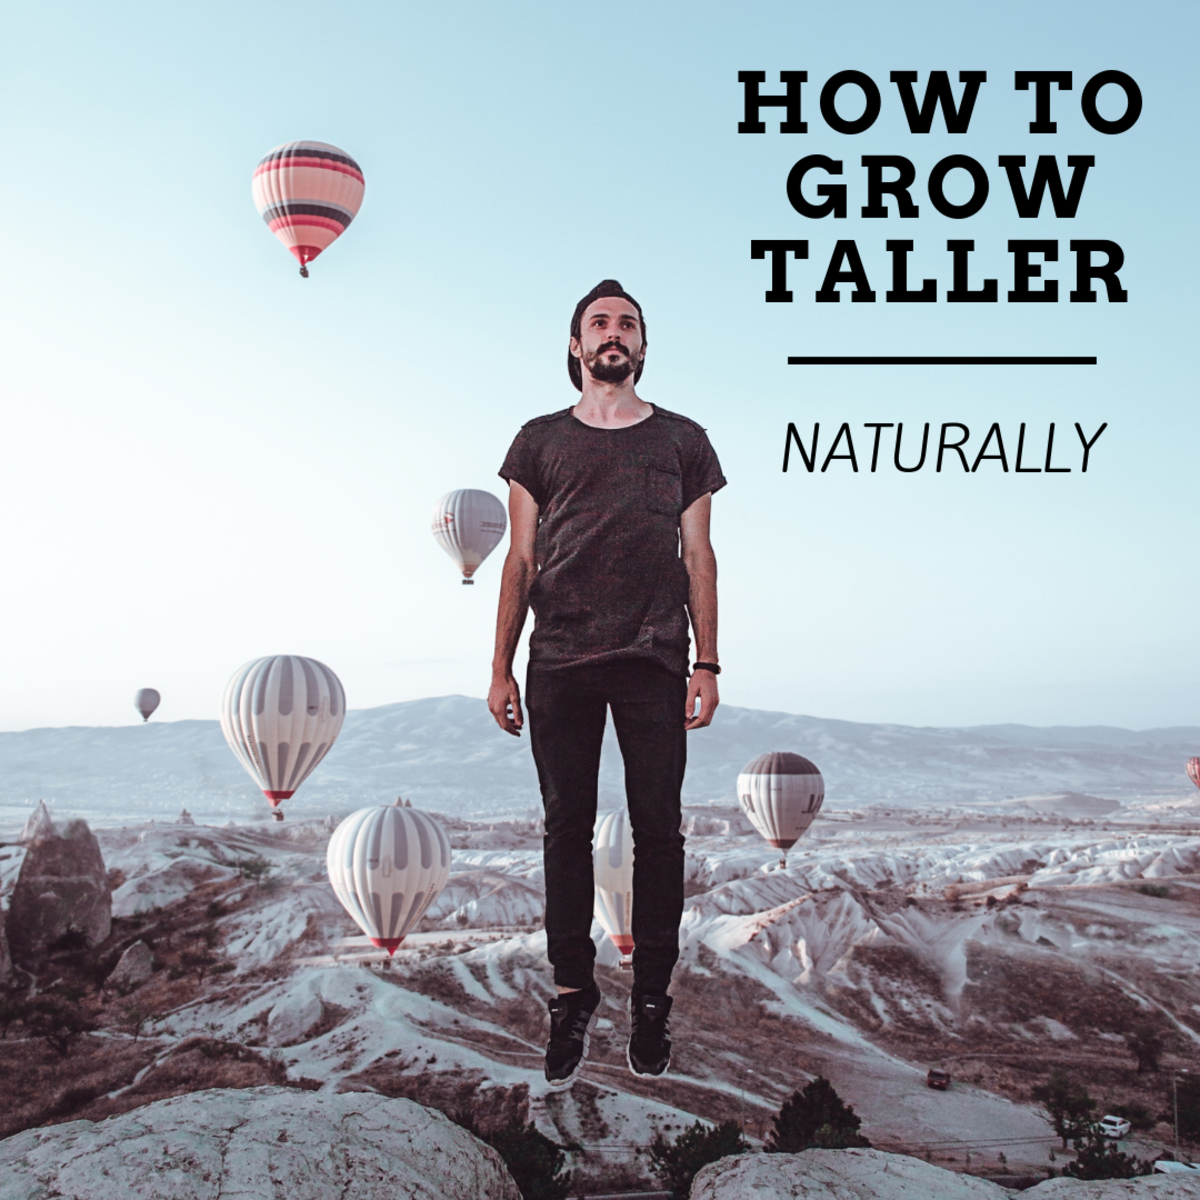 How to Grow Taller by Increasing Your Height Naturally